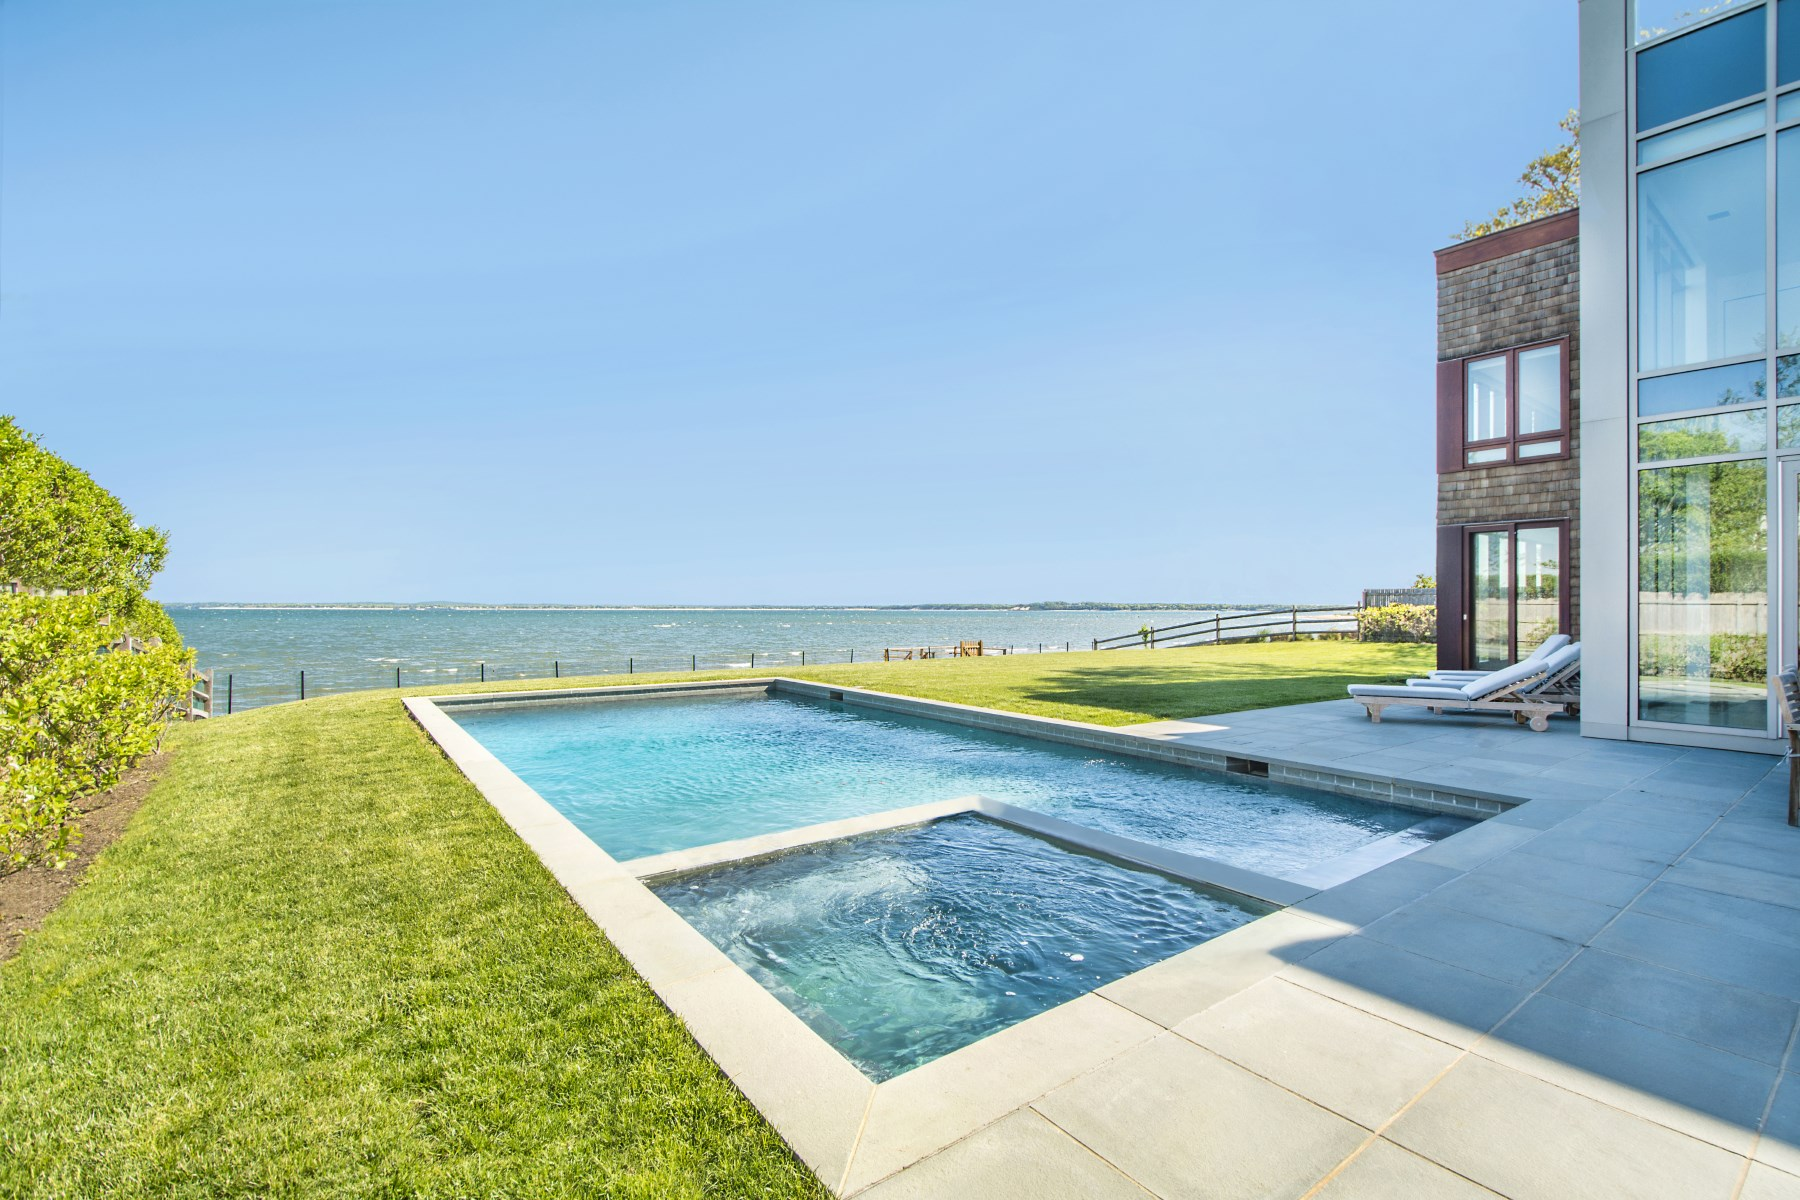 Single Family Home for Sale at Sag Harbor Spectacular Waterfront 43 Noyack Bay Avenue Sag Harbor, New York 11963 United States